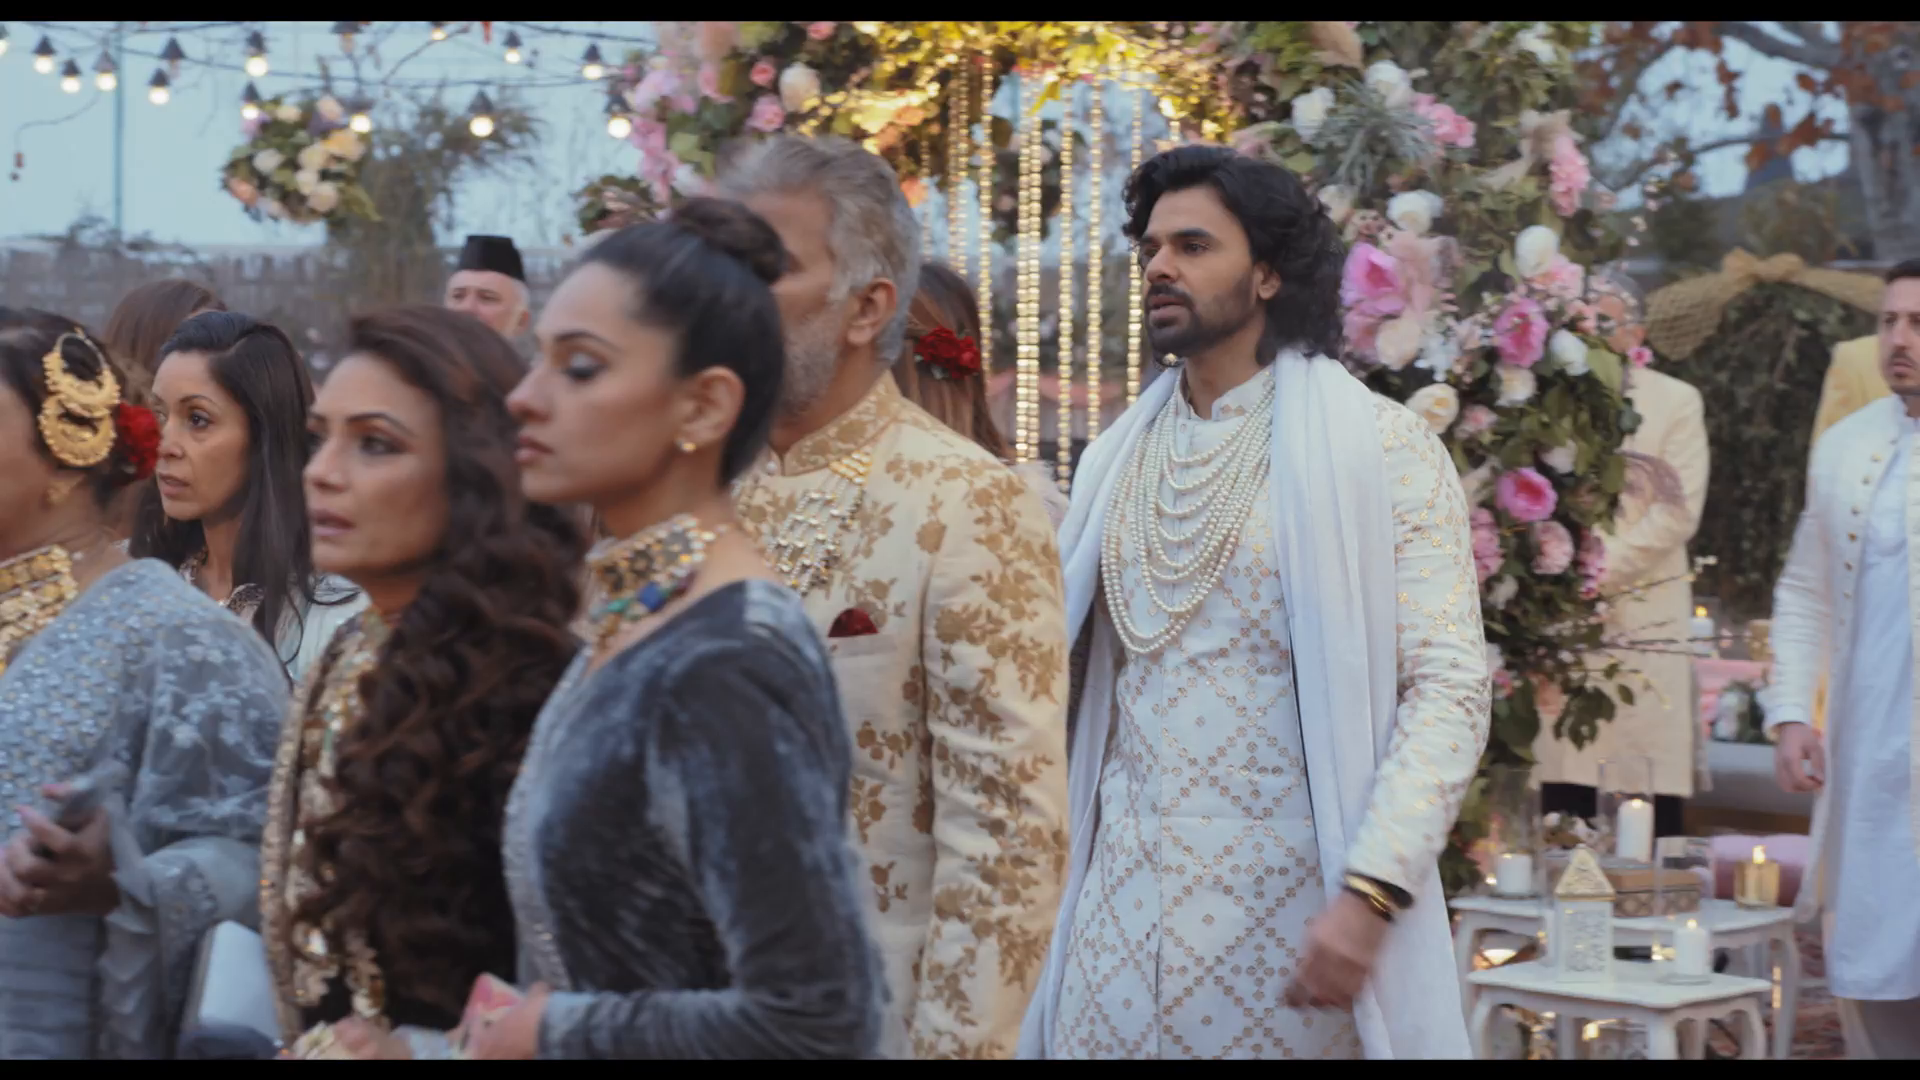 Qubool-Hai-2-0-S01-E01-1080p-ZEE5-WEB-DL-AAC2-0-H-264-Telly-886-png